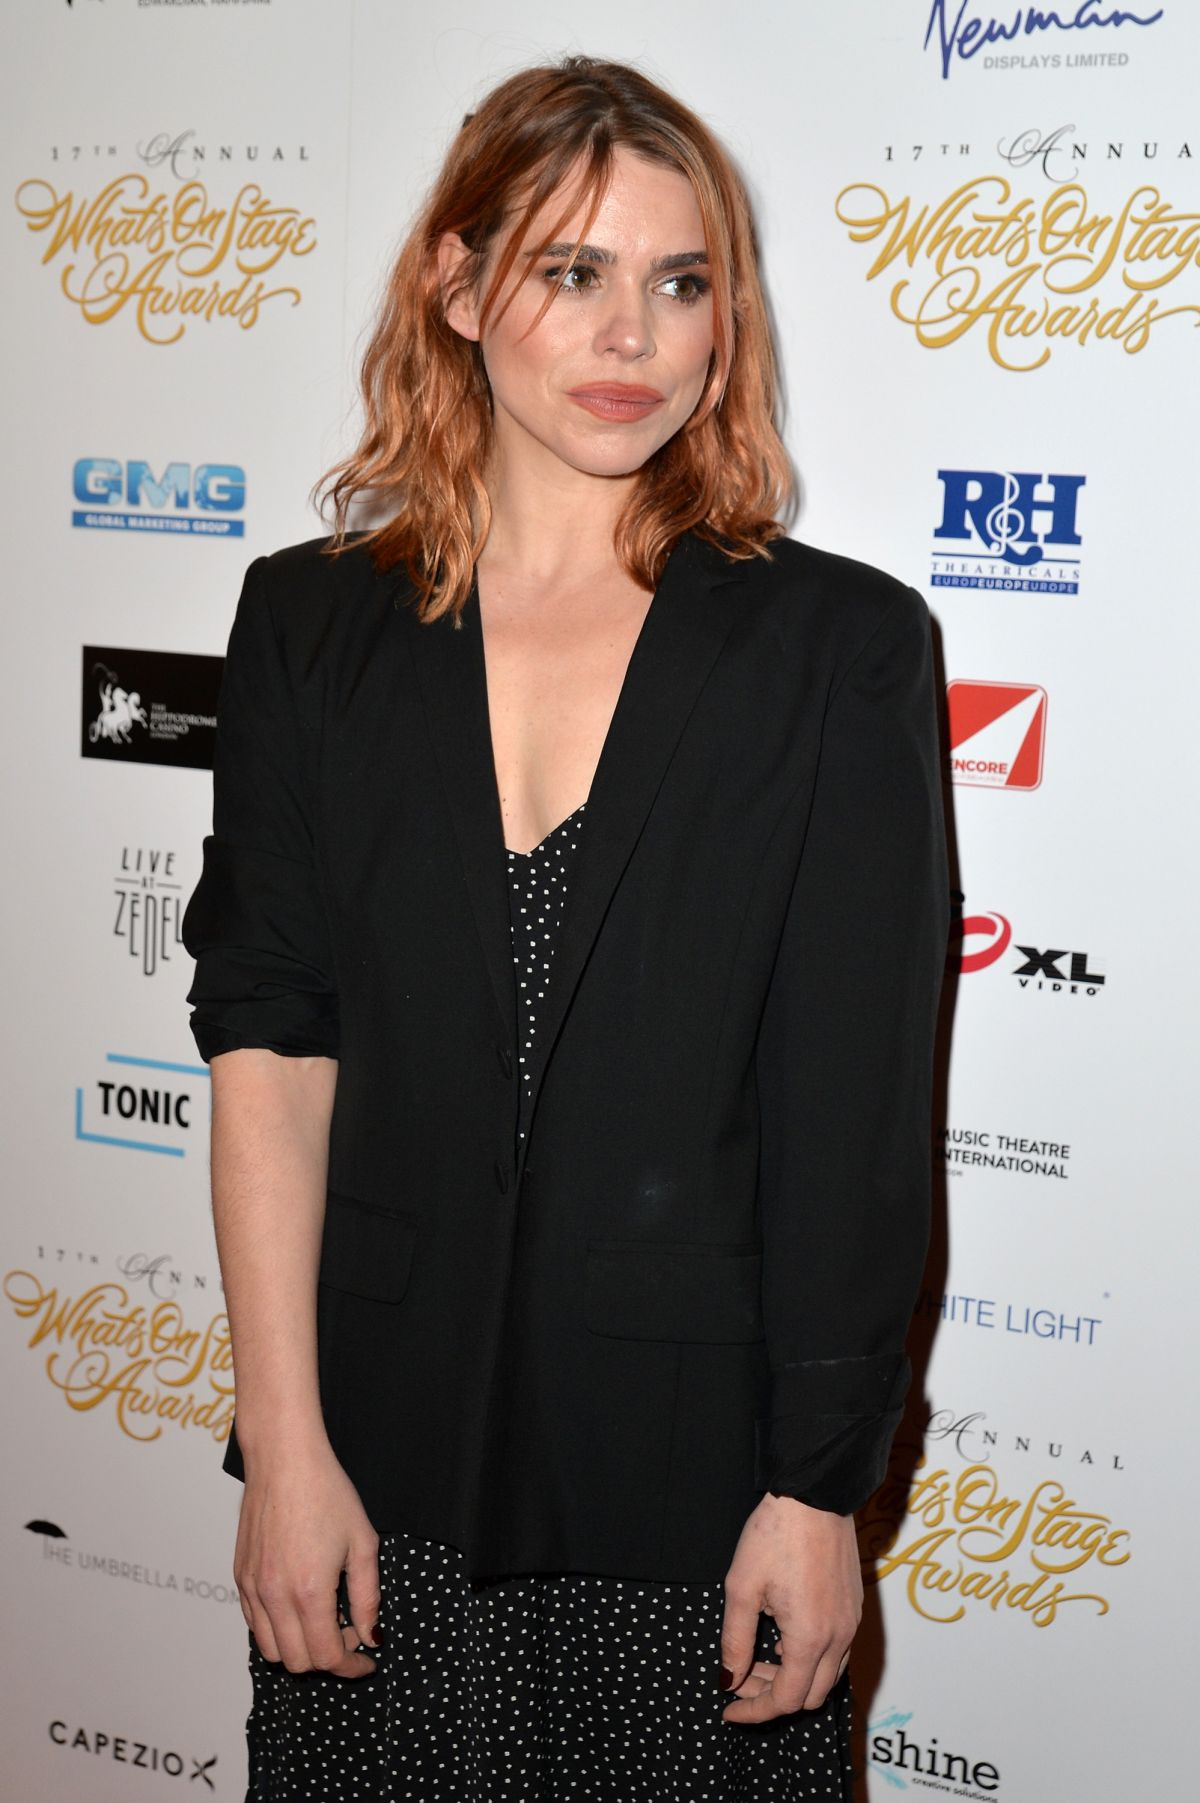 BILLIE PIPER at 2017 WhatsOnStage Awards Concert in London 02/19/2017